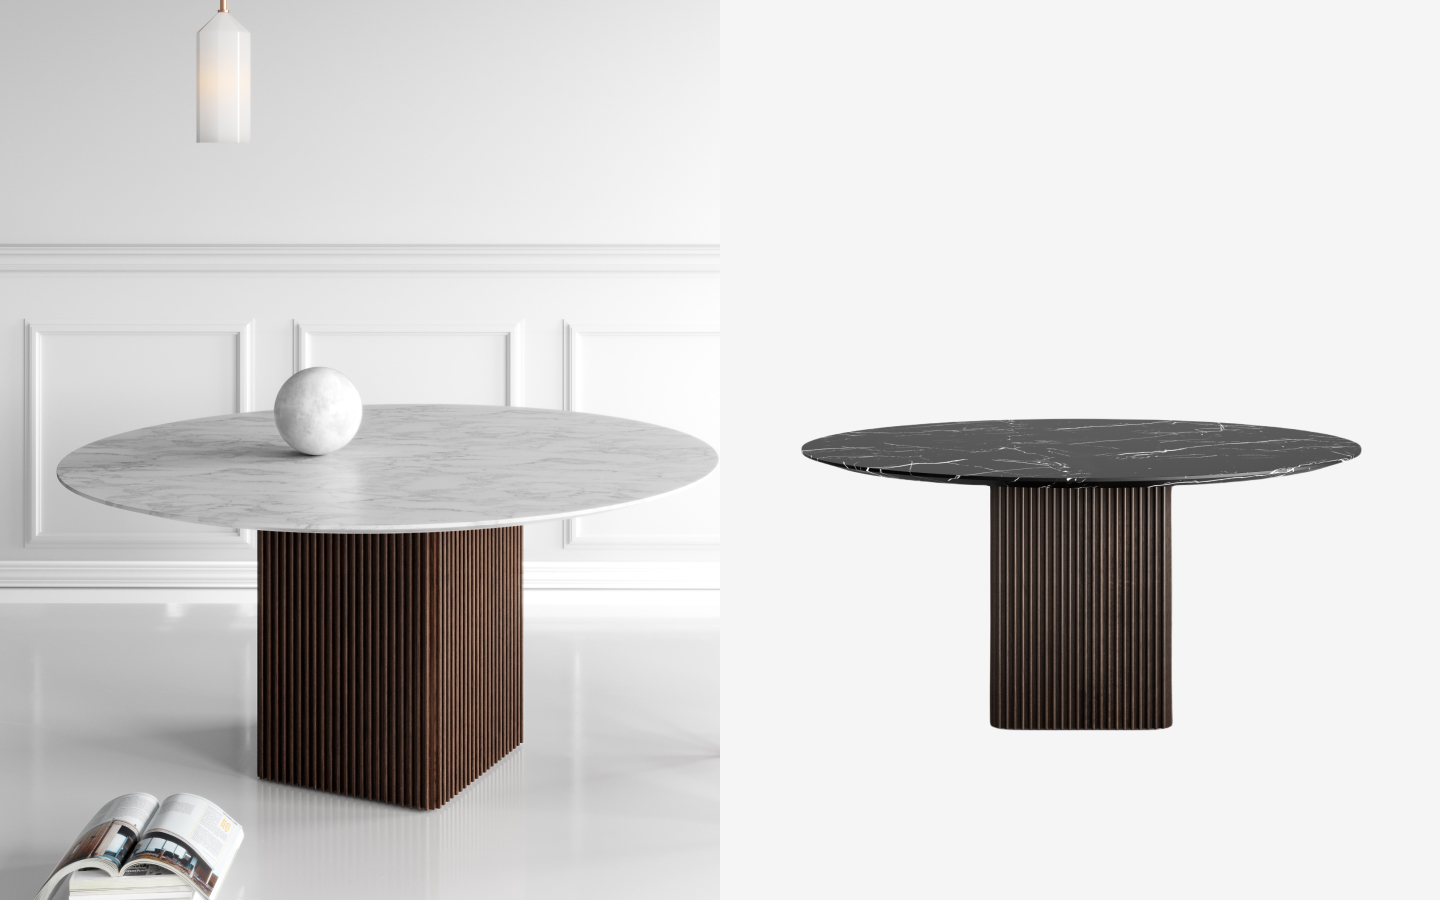 Dining table with round marble top and rectangular wooden base